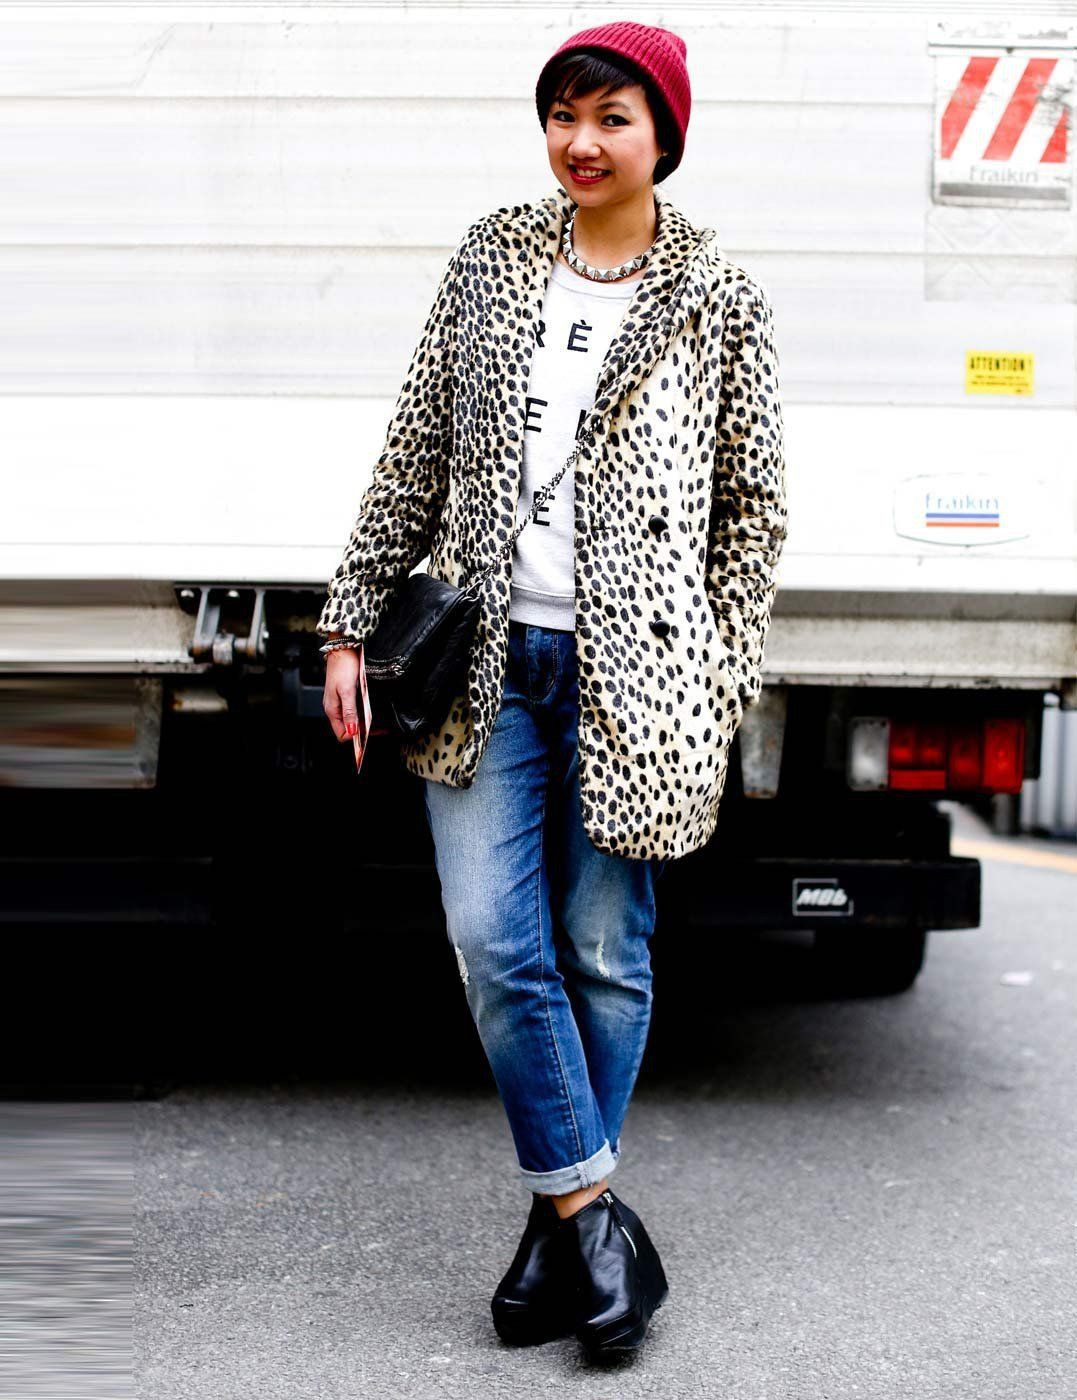 Outfits With Leopard Print Jackets, Polka dot, Street fashion